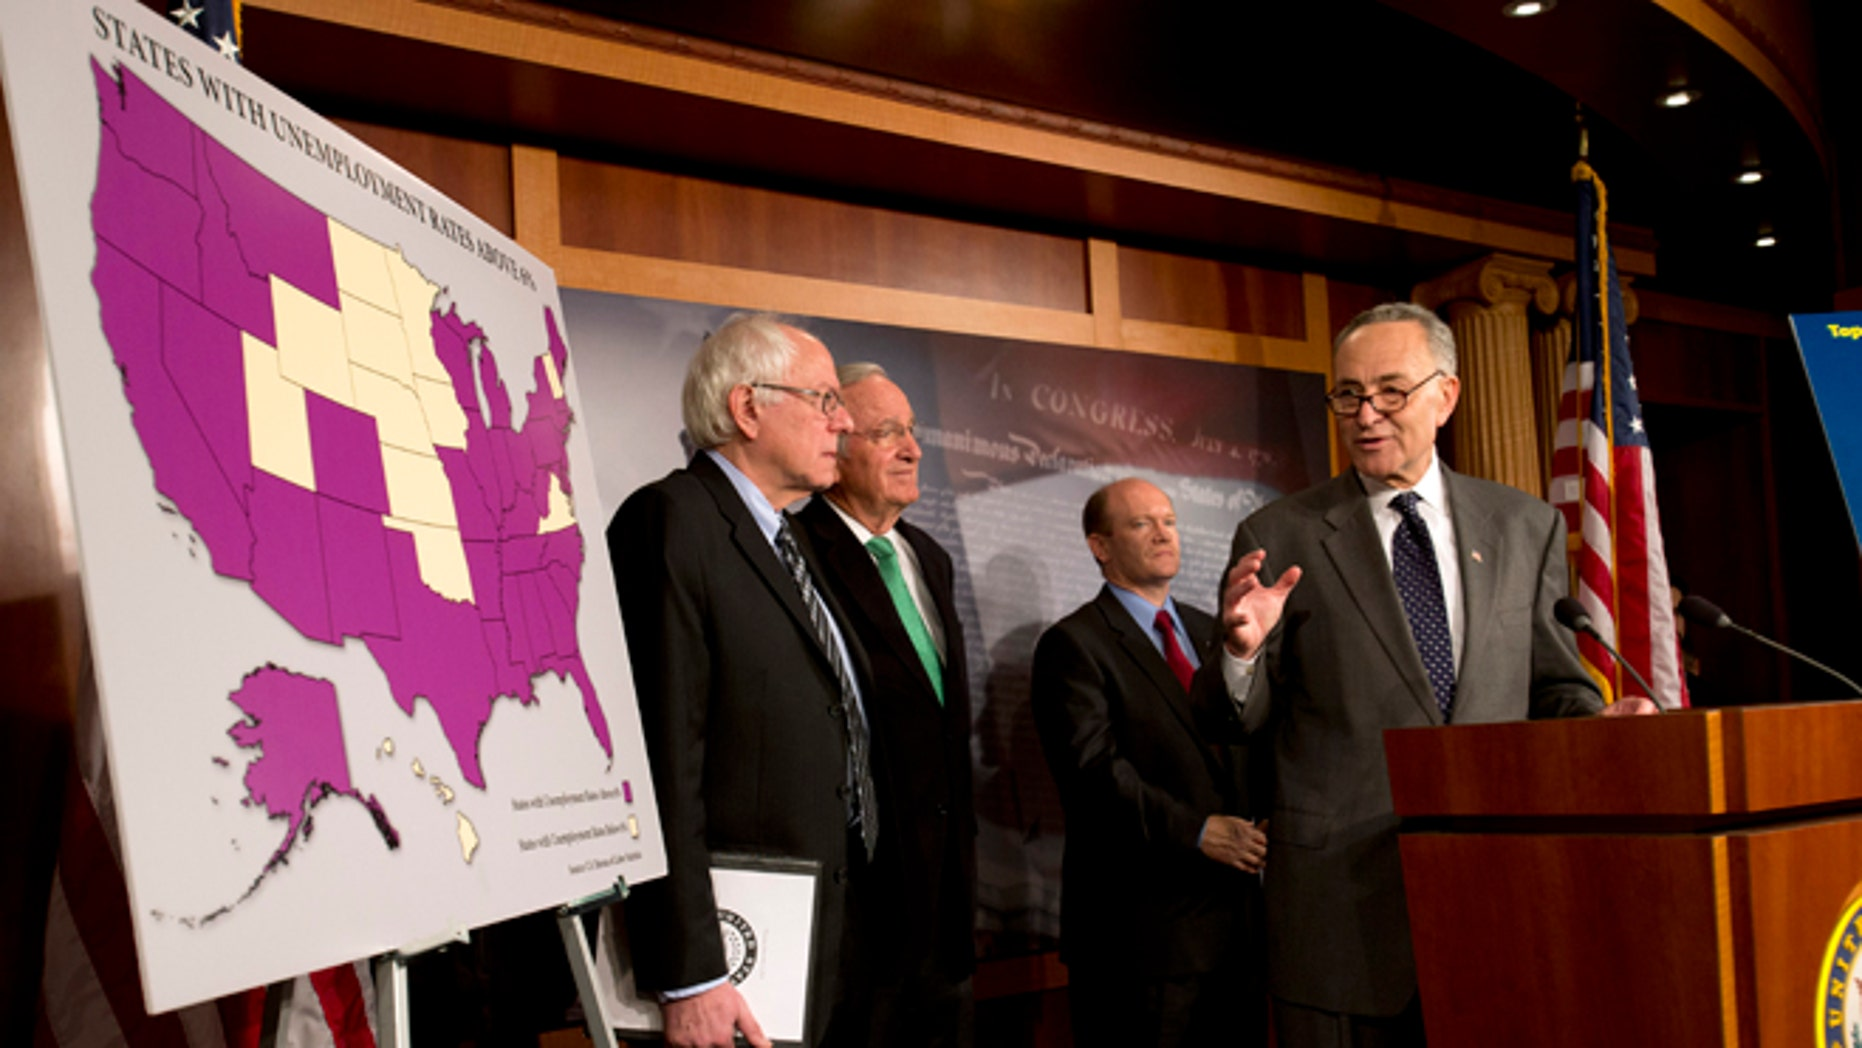 """FILE- In this Dec. 6, 2012, photo, Sen. Charles Schumer, D-N.Y., right, accompanied by from left, Sen. Bernard Sanders, I-Vt., Sen. Tom Harkin, D-Iowa, and Sen. Chris Coons, D-Del., gestures during a news conference the possibility of Americans abruptly their jobless benefits at the of the year on Capitol Hill in Washington,  Hovering in the background of the """"fiscal cliff"""" debate is the prospect of 2 million people losing their unemployment benefits four days after Christmas. (AP Photo/Jacquelyn Martin)"""